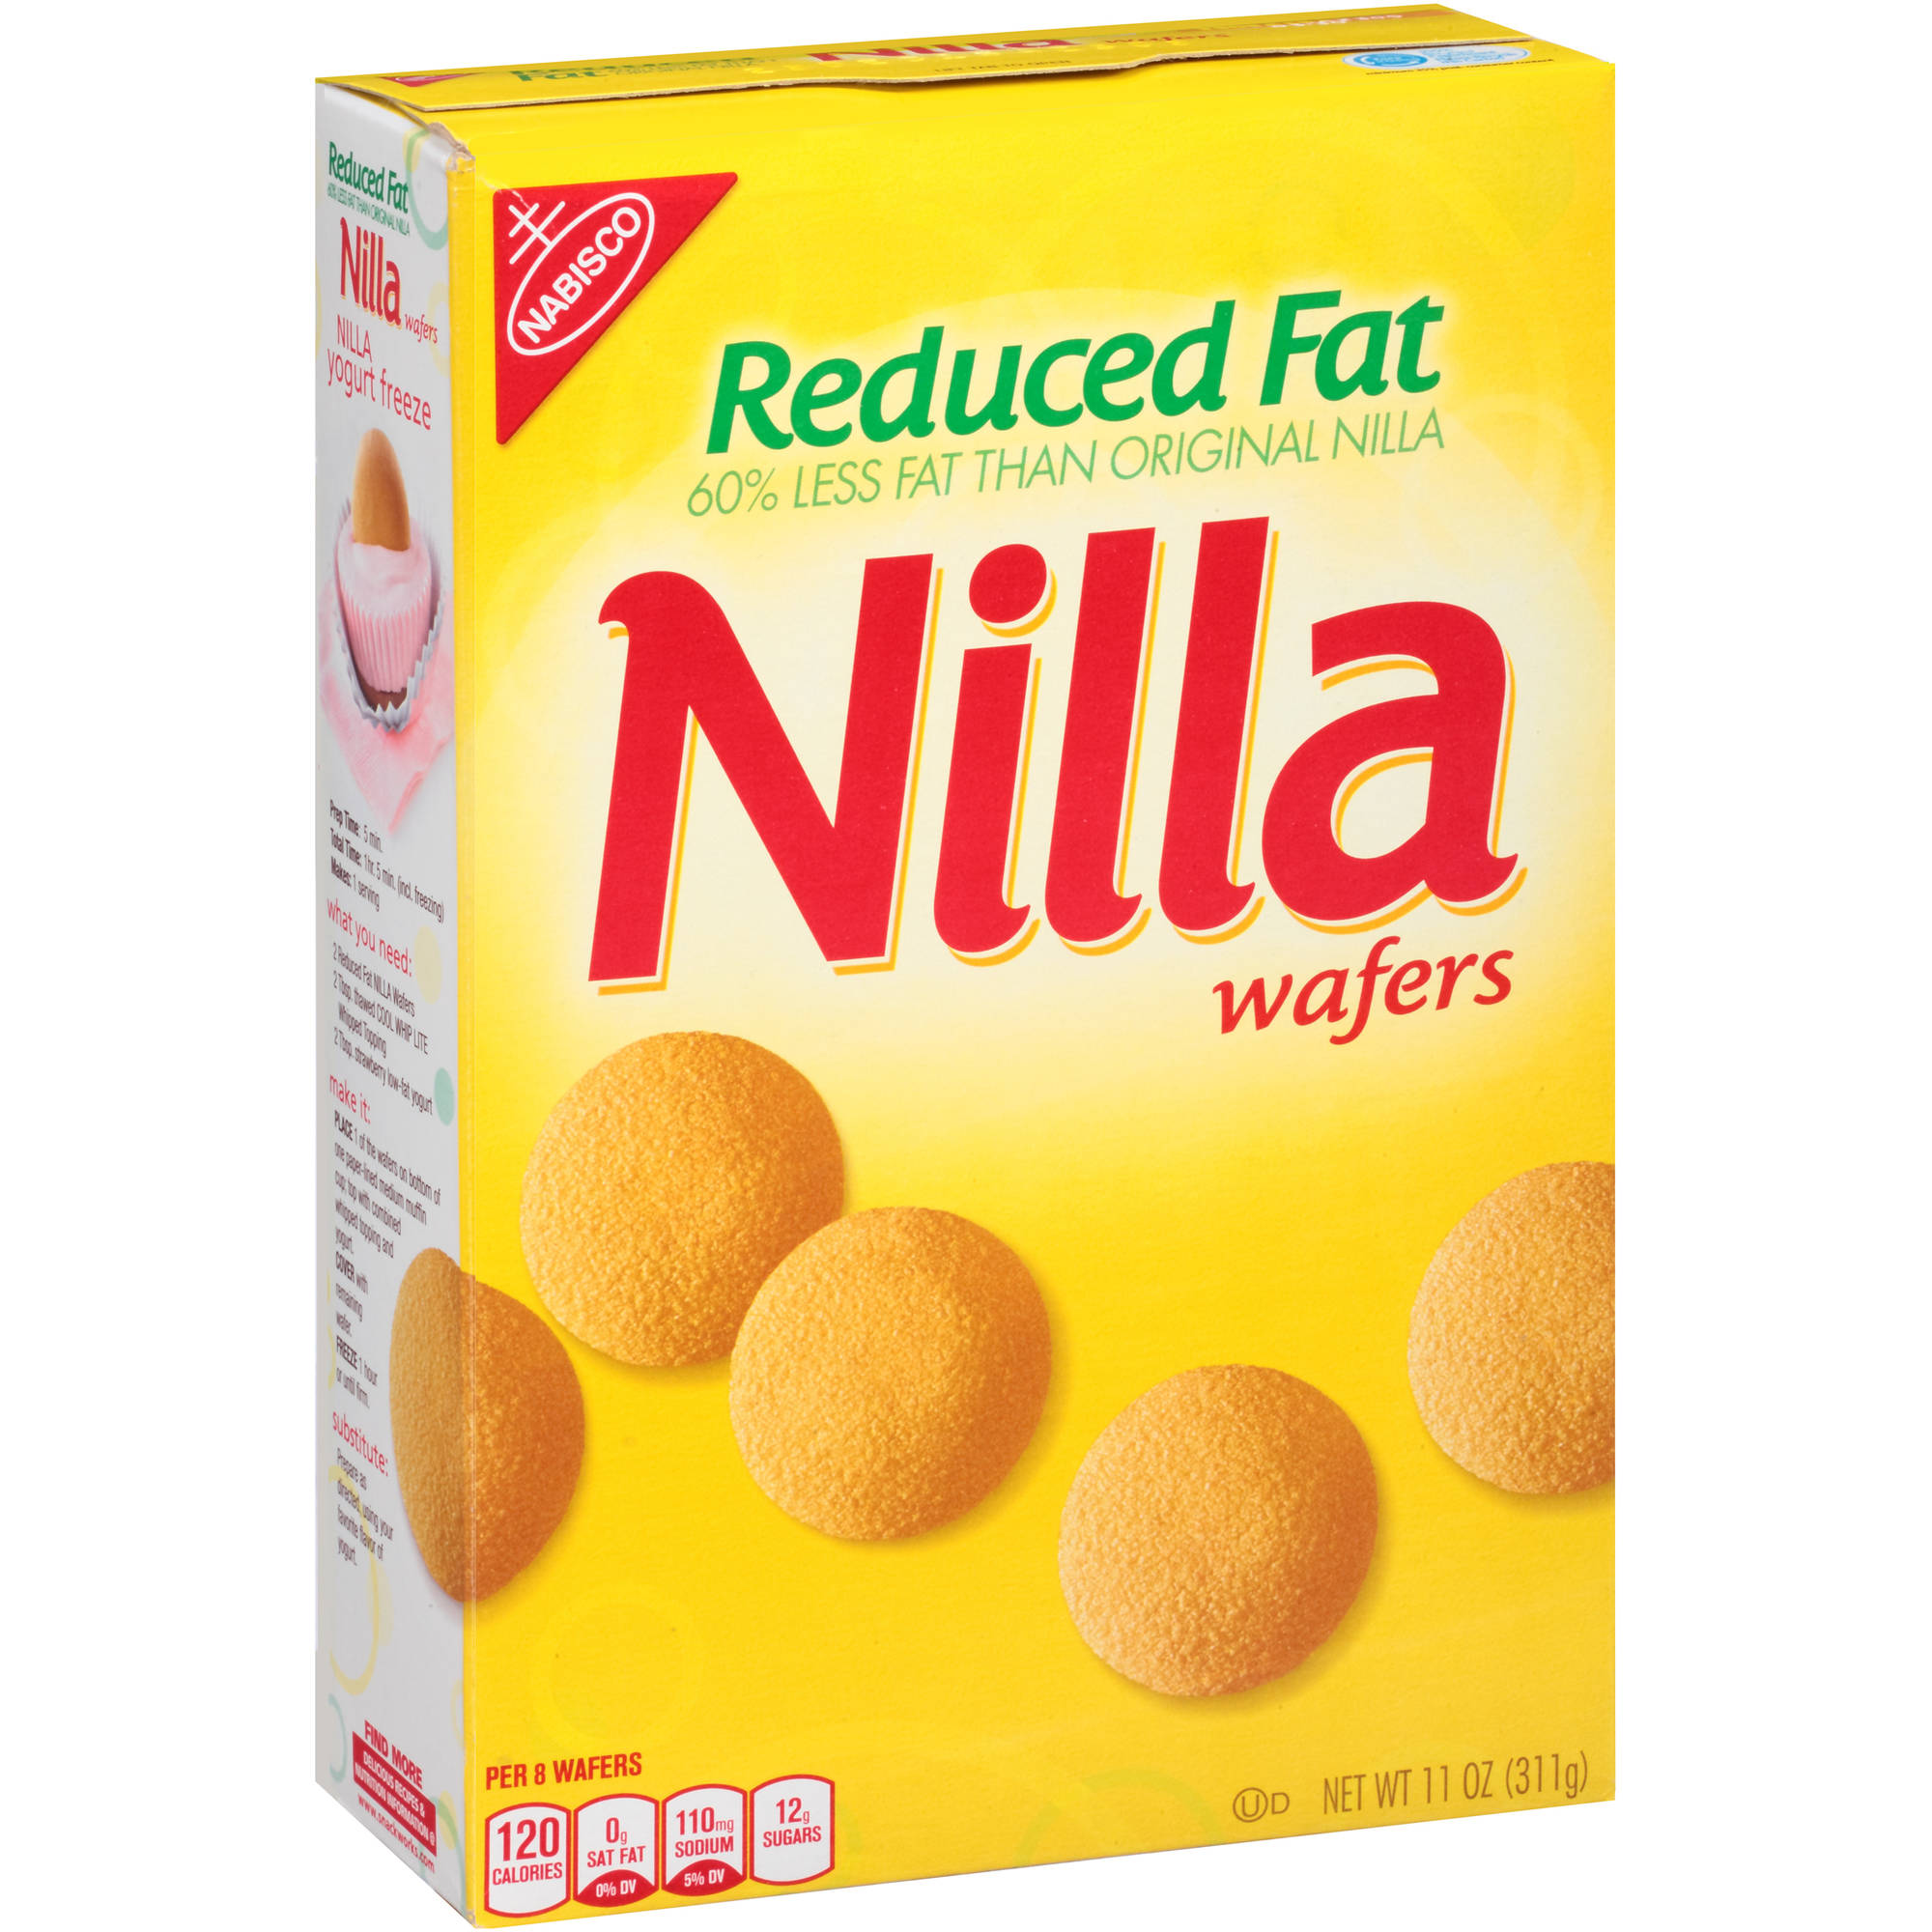 Nabisco Reduced Fat Nilla Wafers, 11 oz